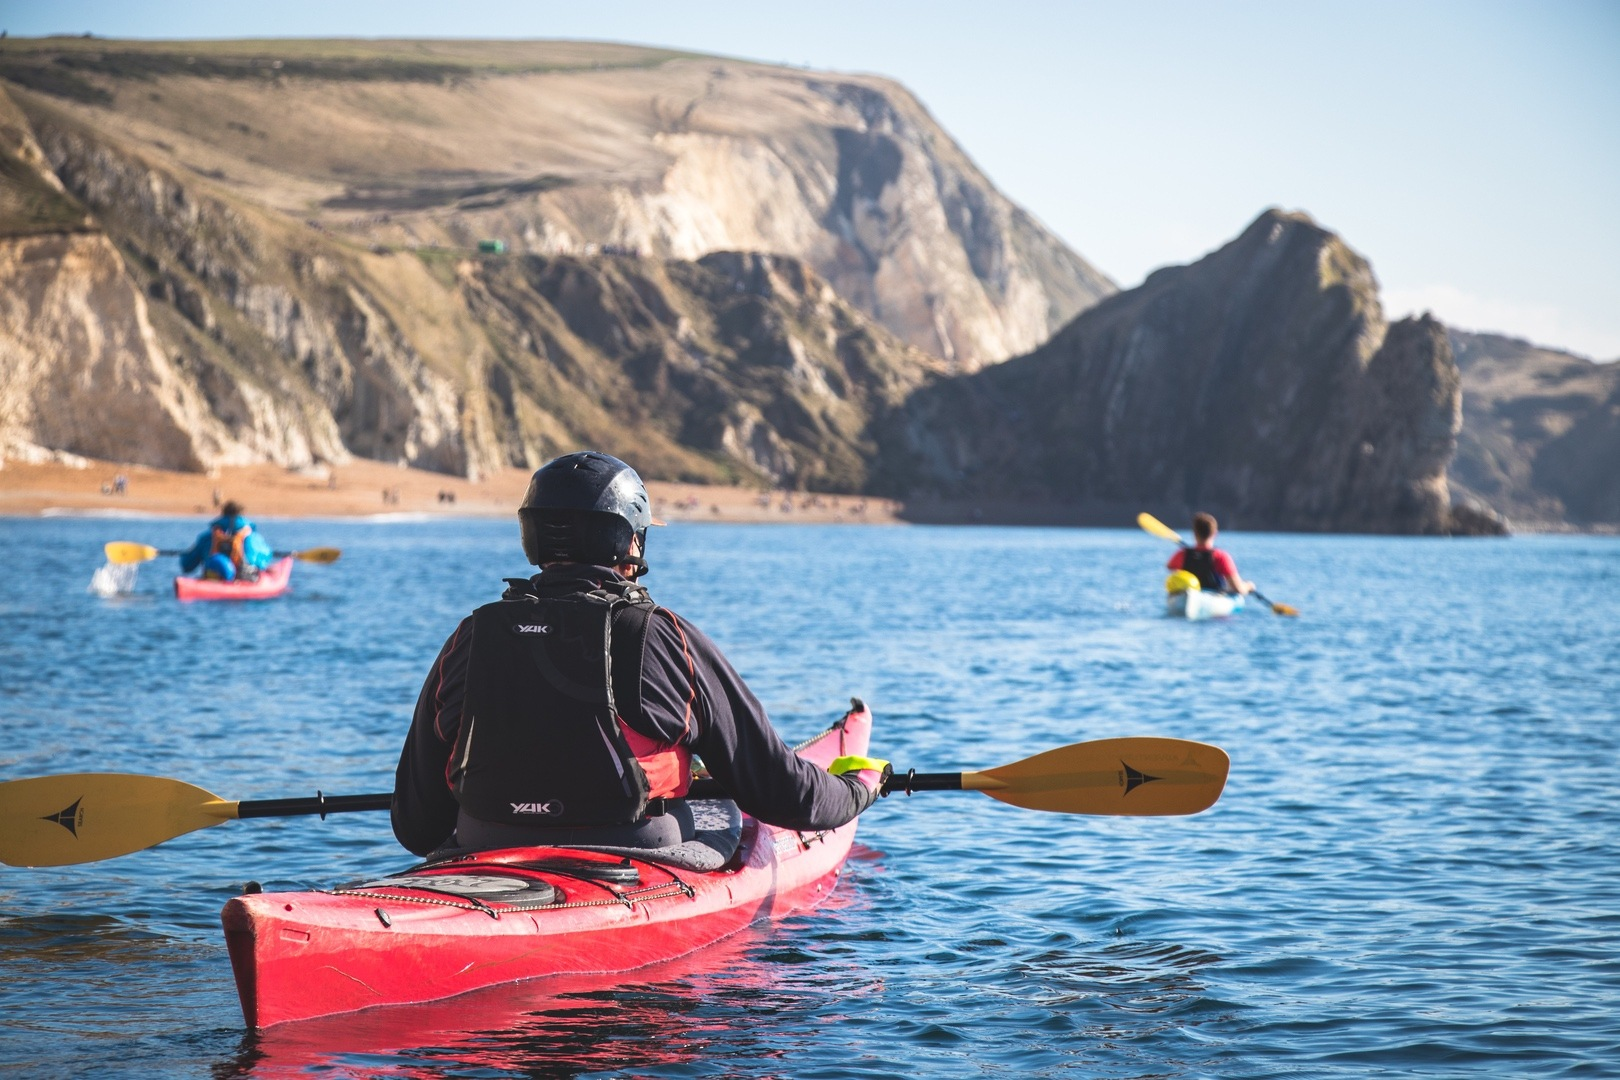 Come and explore the Dorset coastline during a social distancing paddling experience